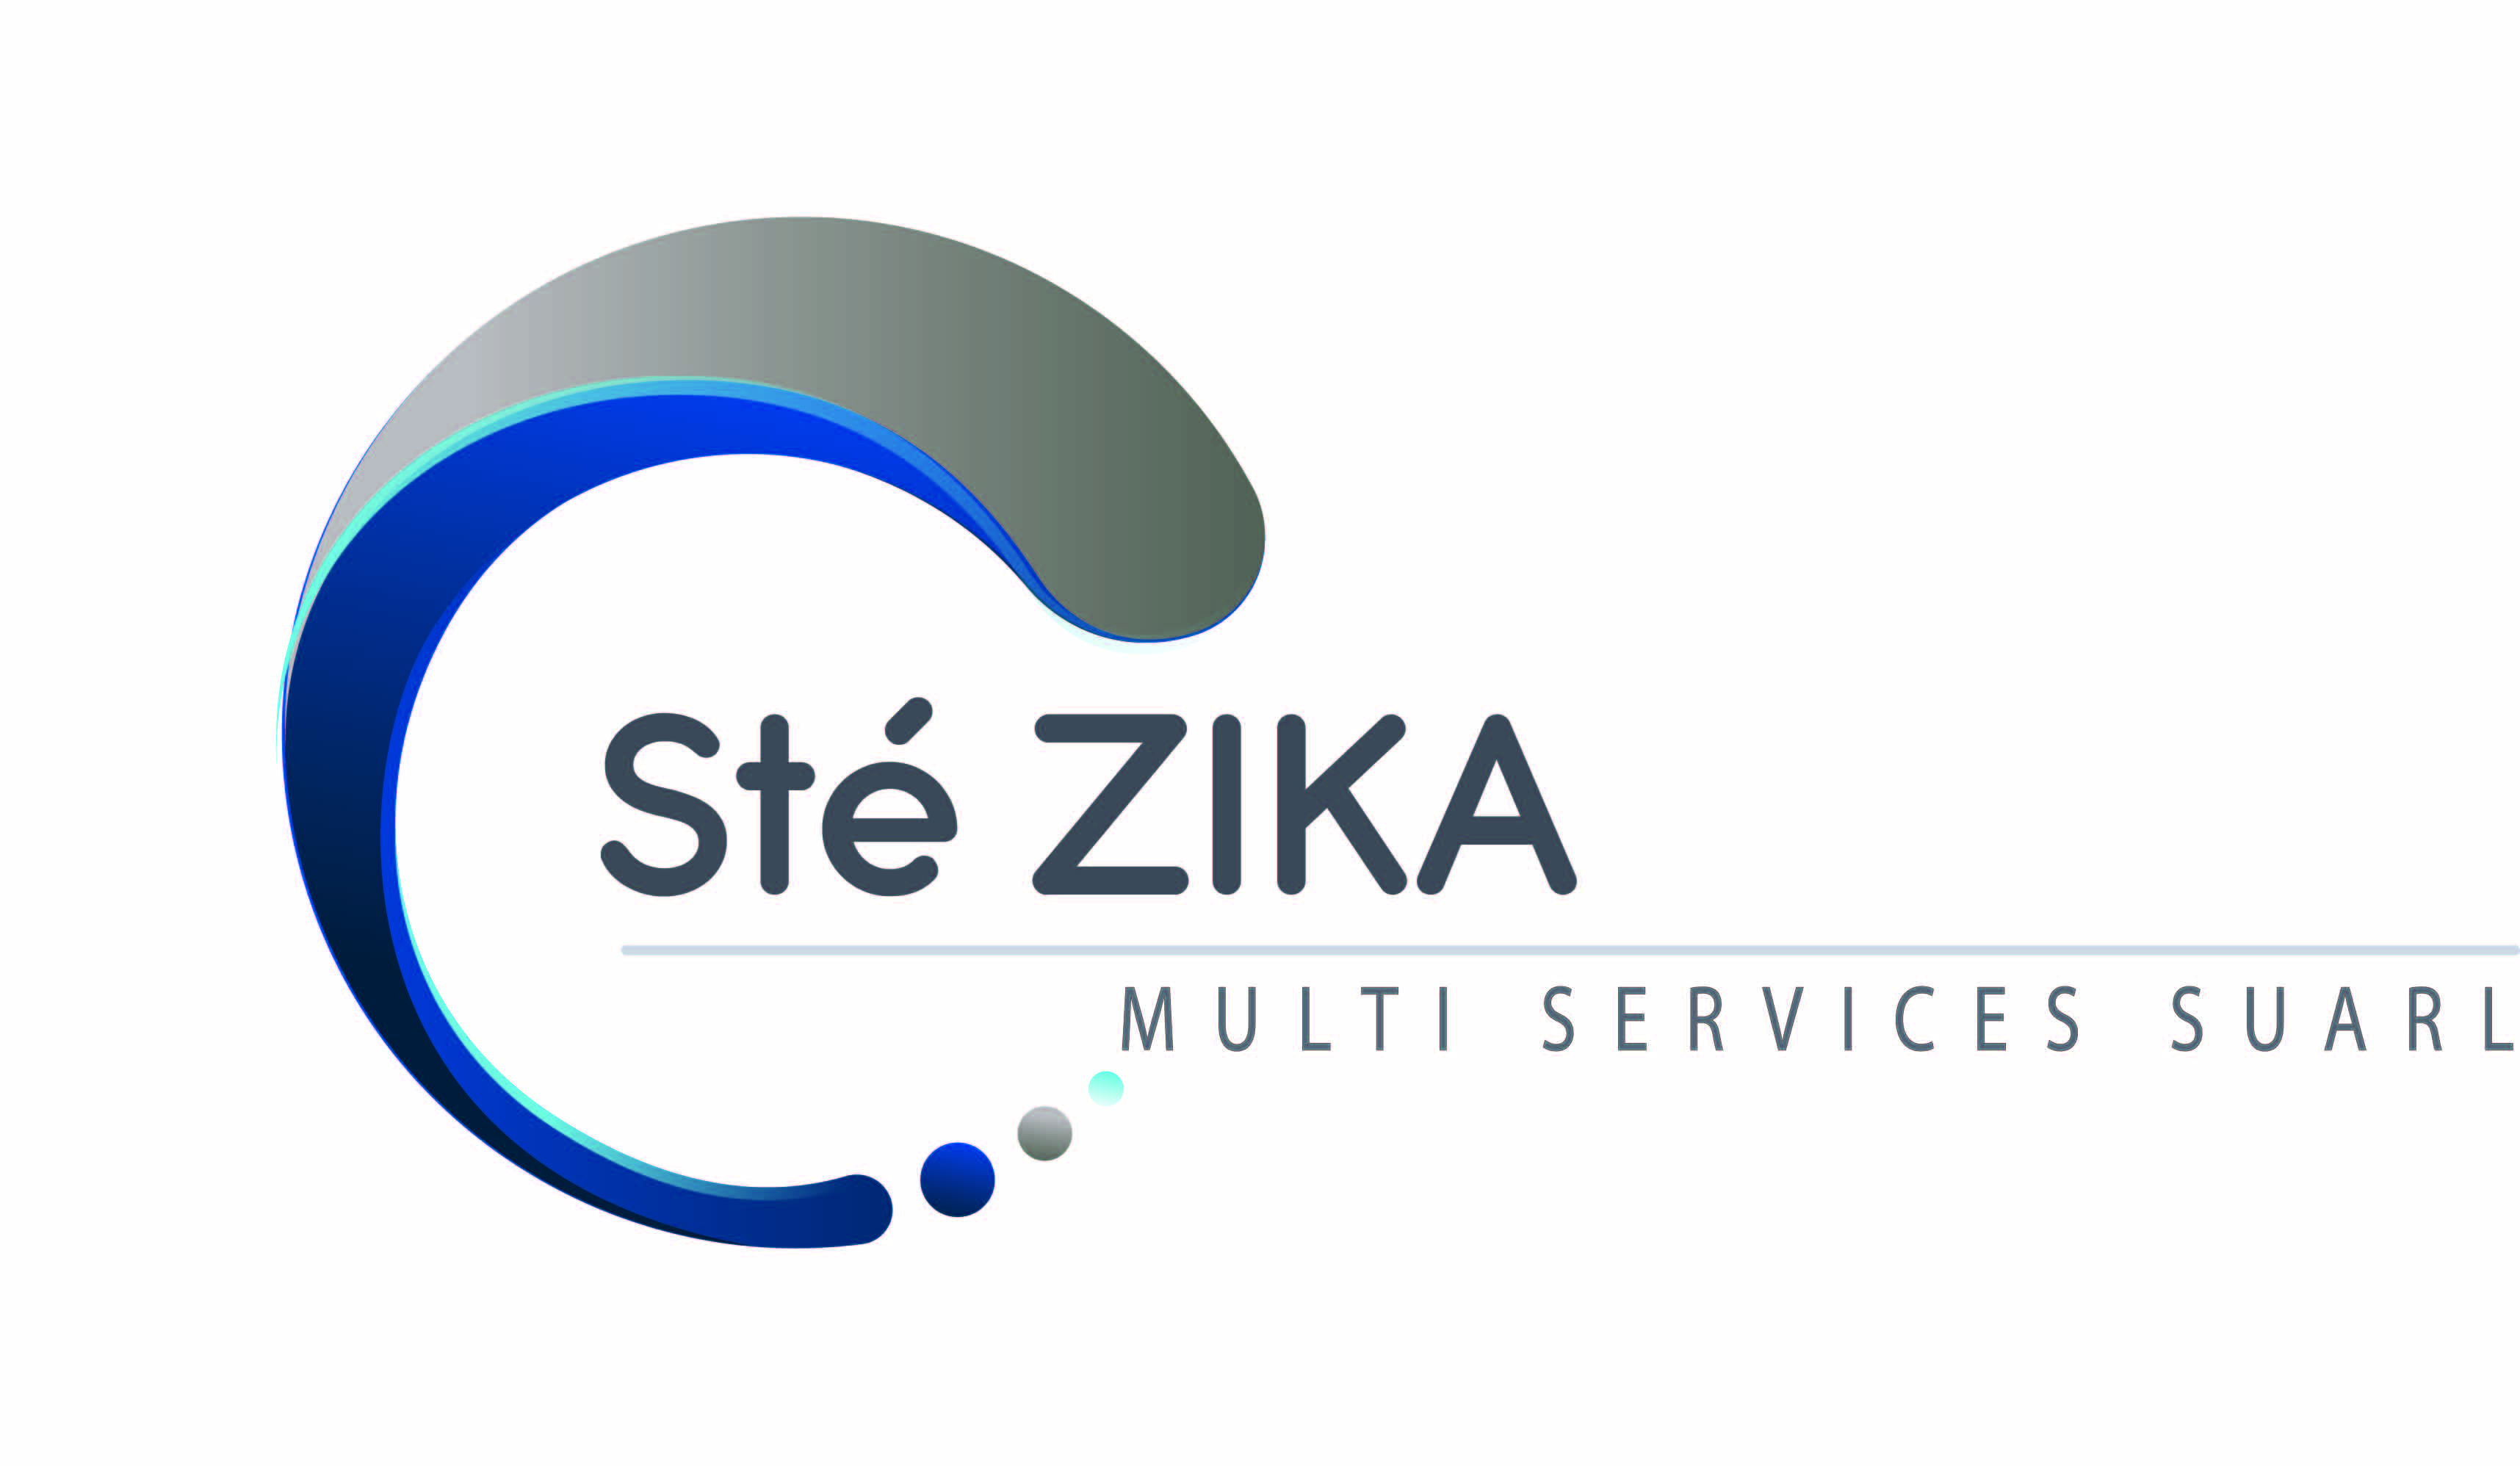 ZIKA multiservices